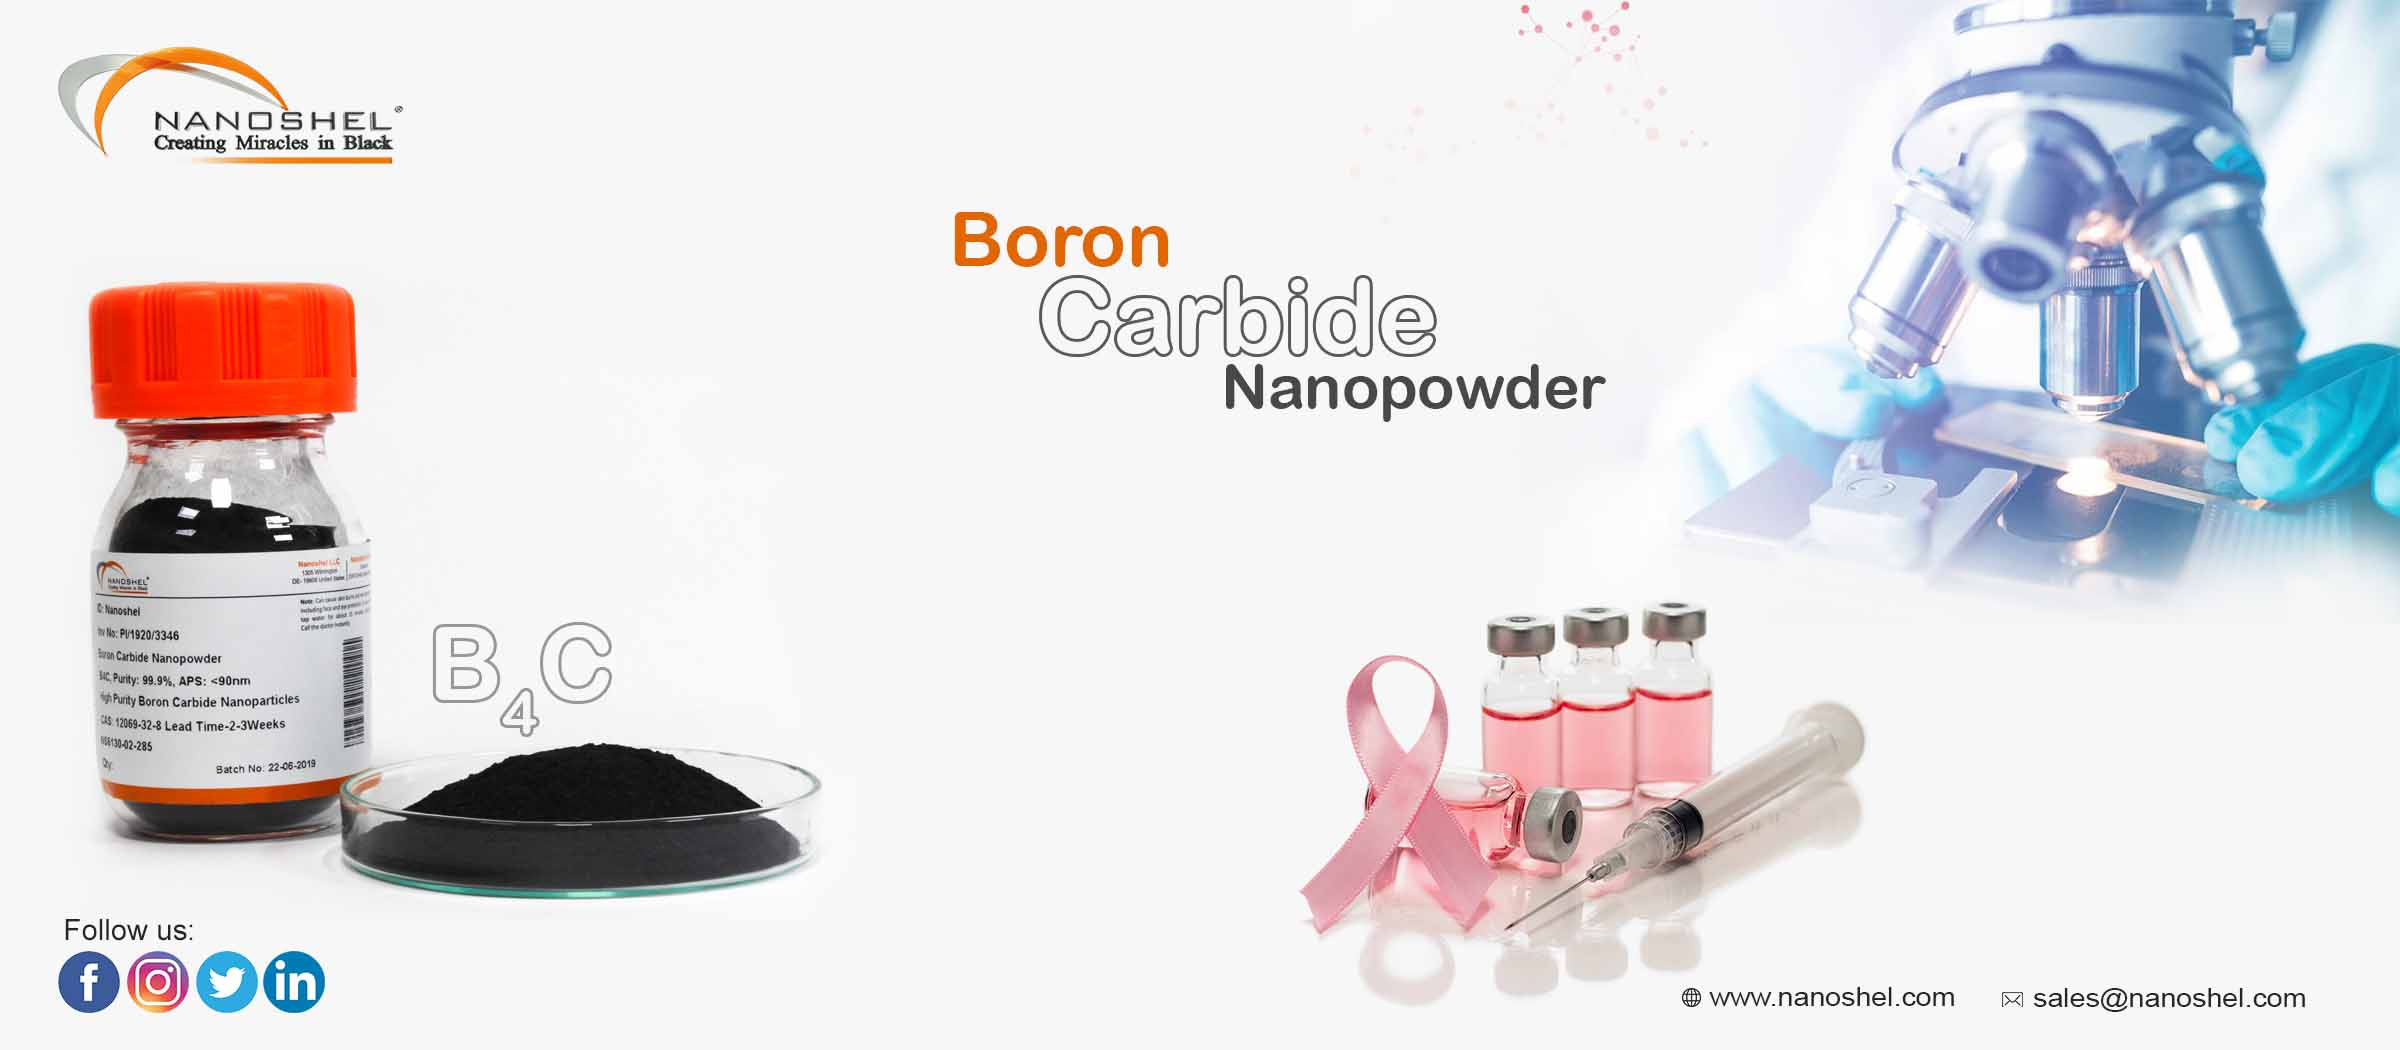 Boron Carbide Nanoparticles